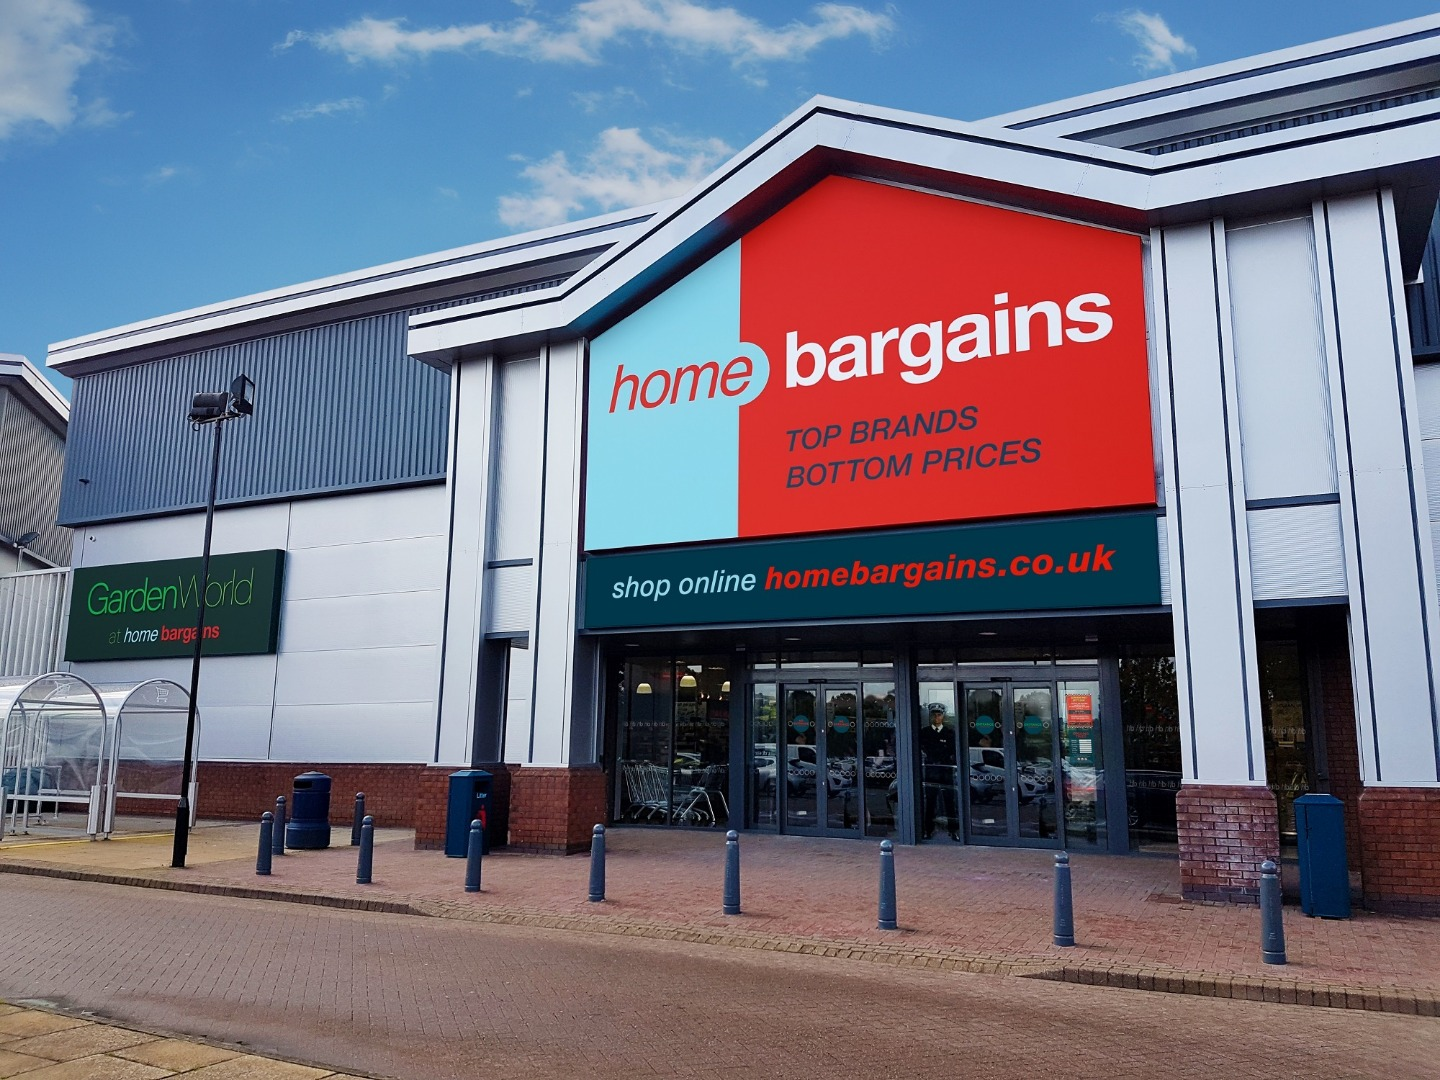 ORBIT'S LYME GREEN RETAIL BUSINESS PARK HOSTS NEW HOME BARGAINS STORE